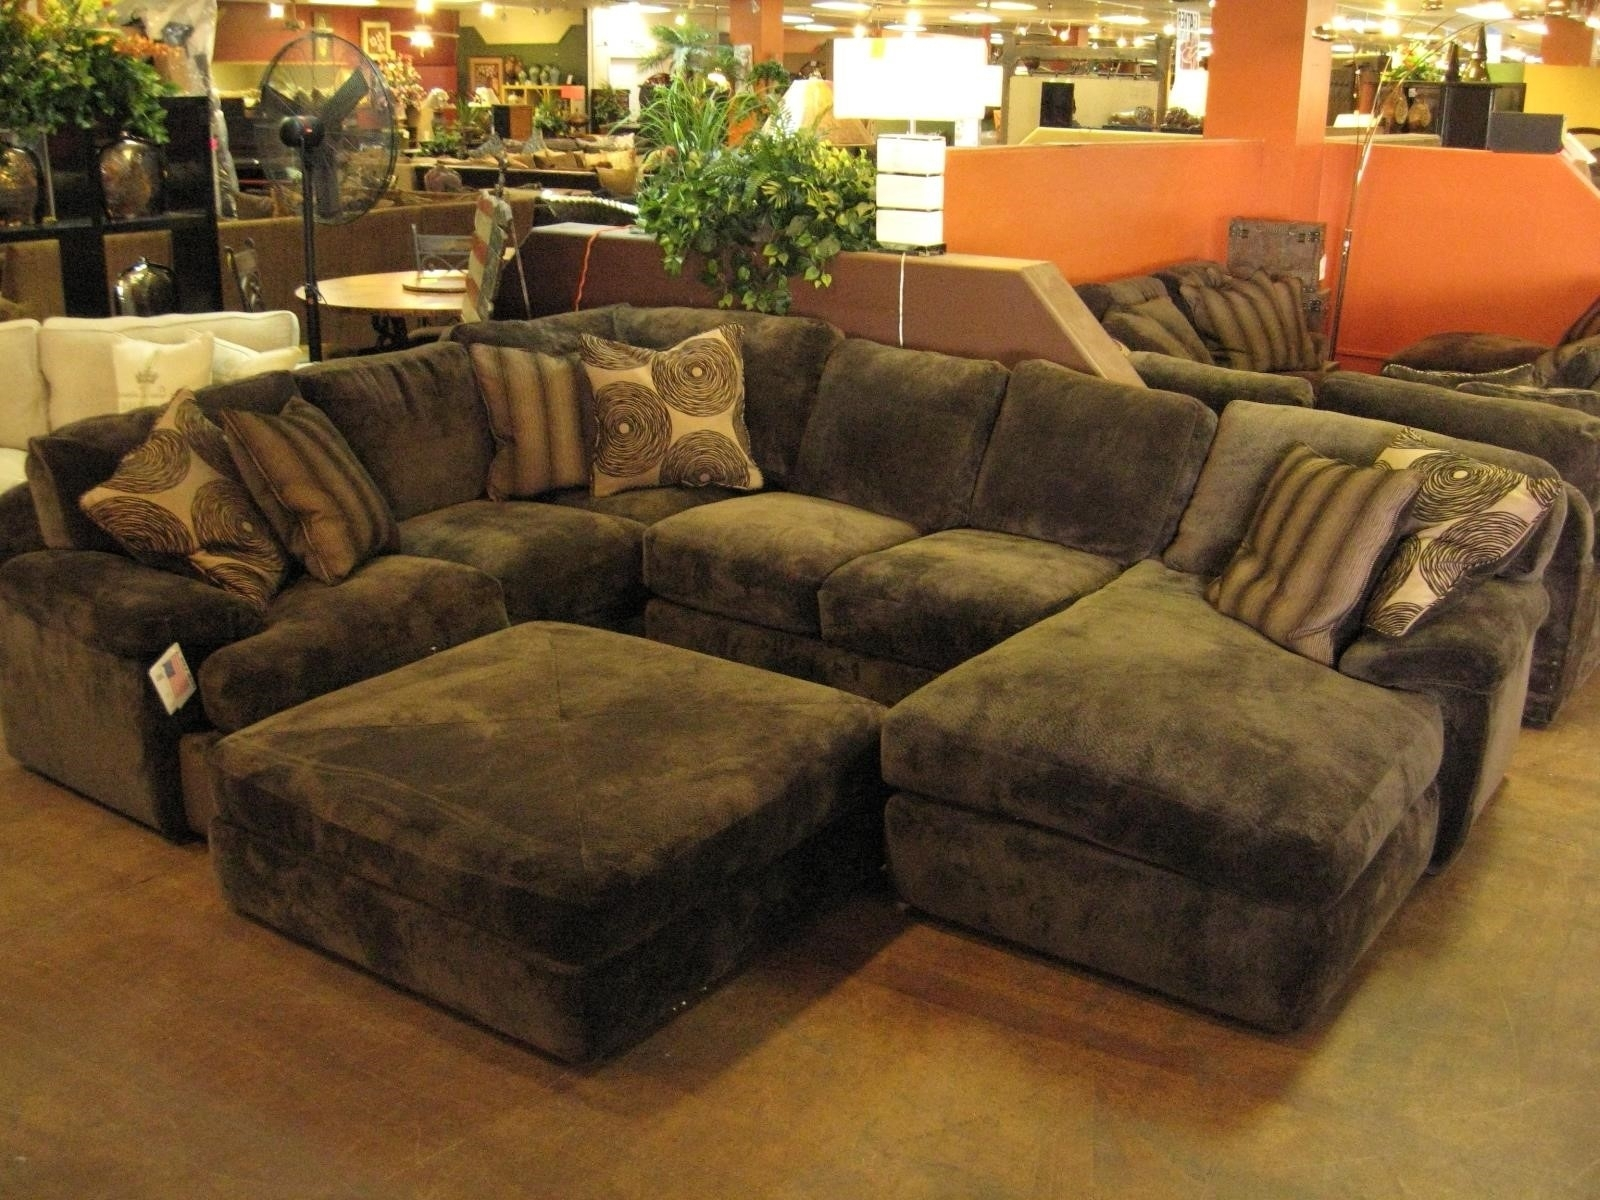 Sofa Extra Large Sectional With Chaise And Ottoman U Shaped Bedroom Within Couches With Large Ottoman (View 9 of 10)